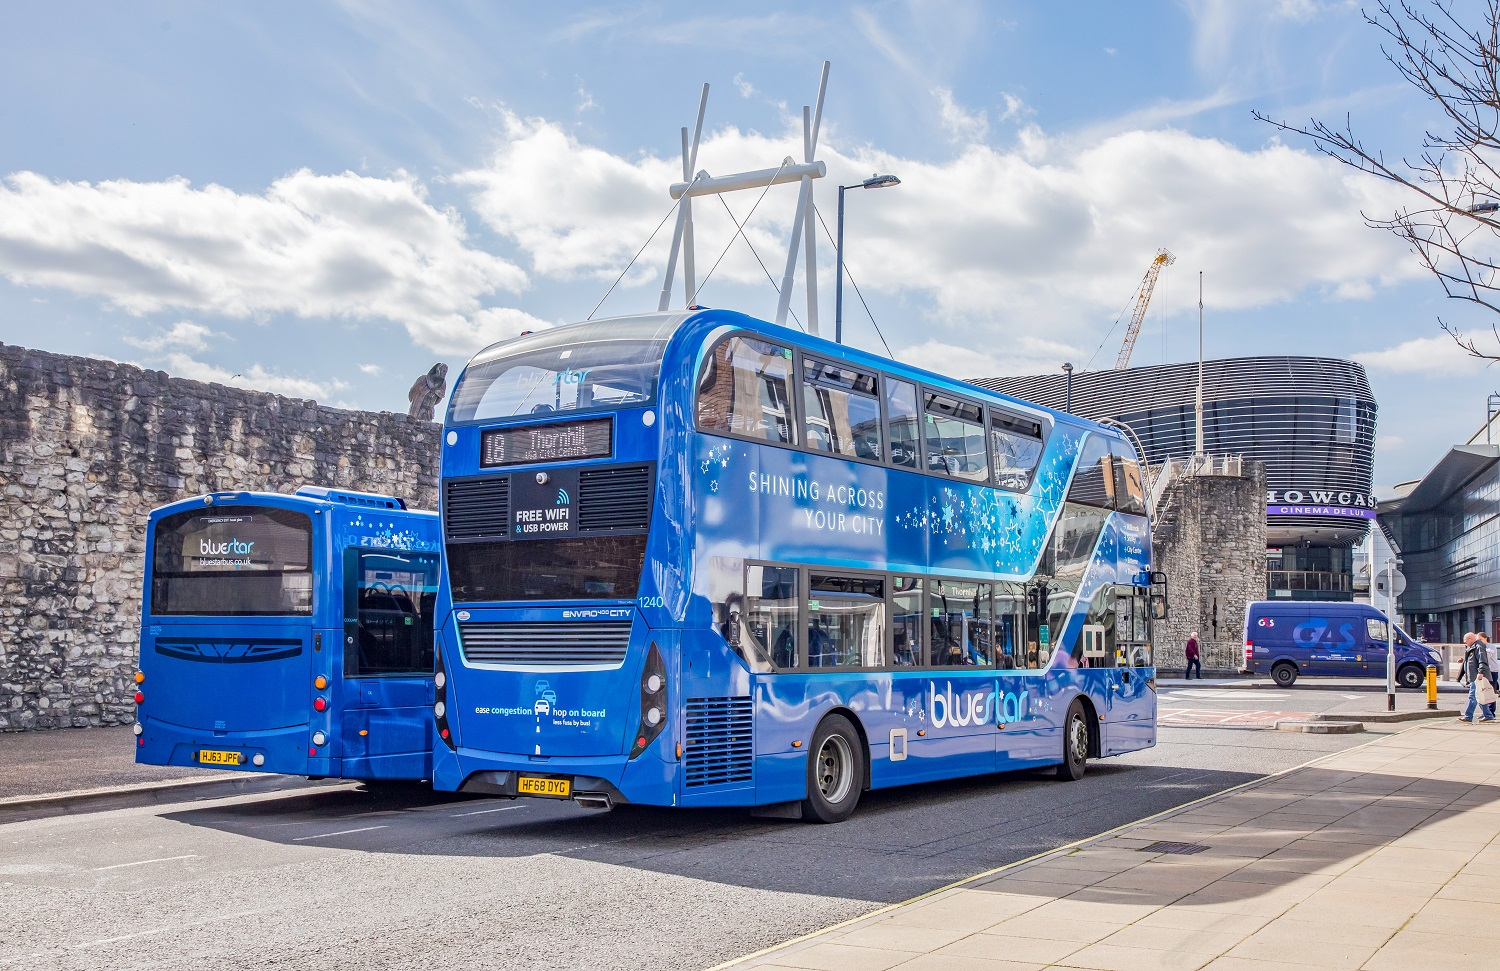 Photo of two bluestar buses parked up by Westquay